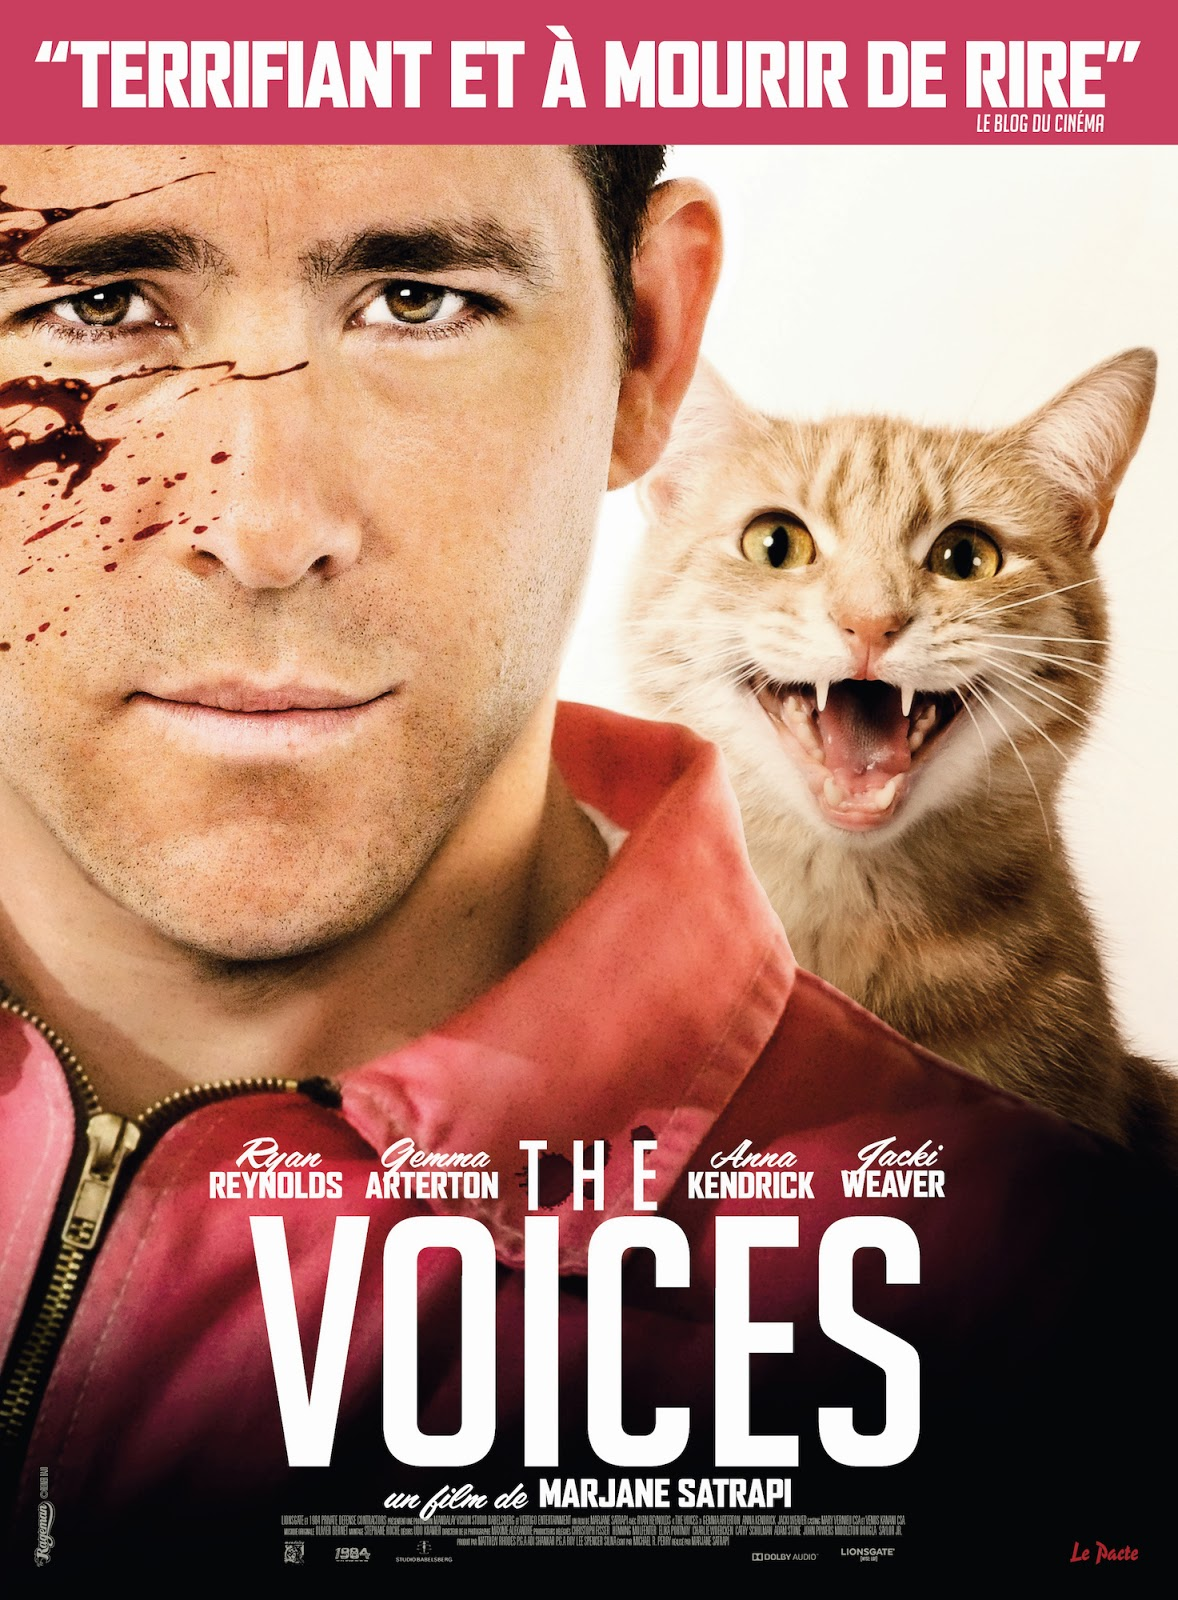 Affiche de The Voices, de Marjane Satrapi (2015)